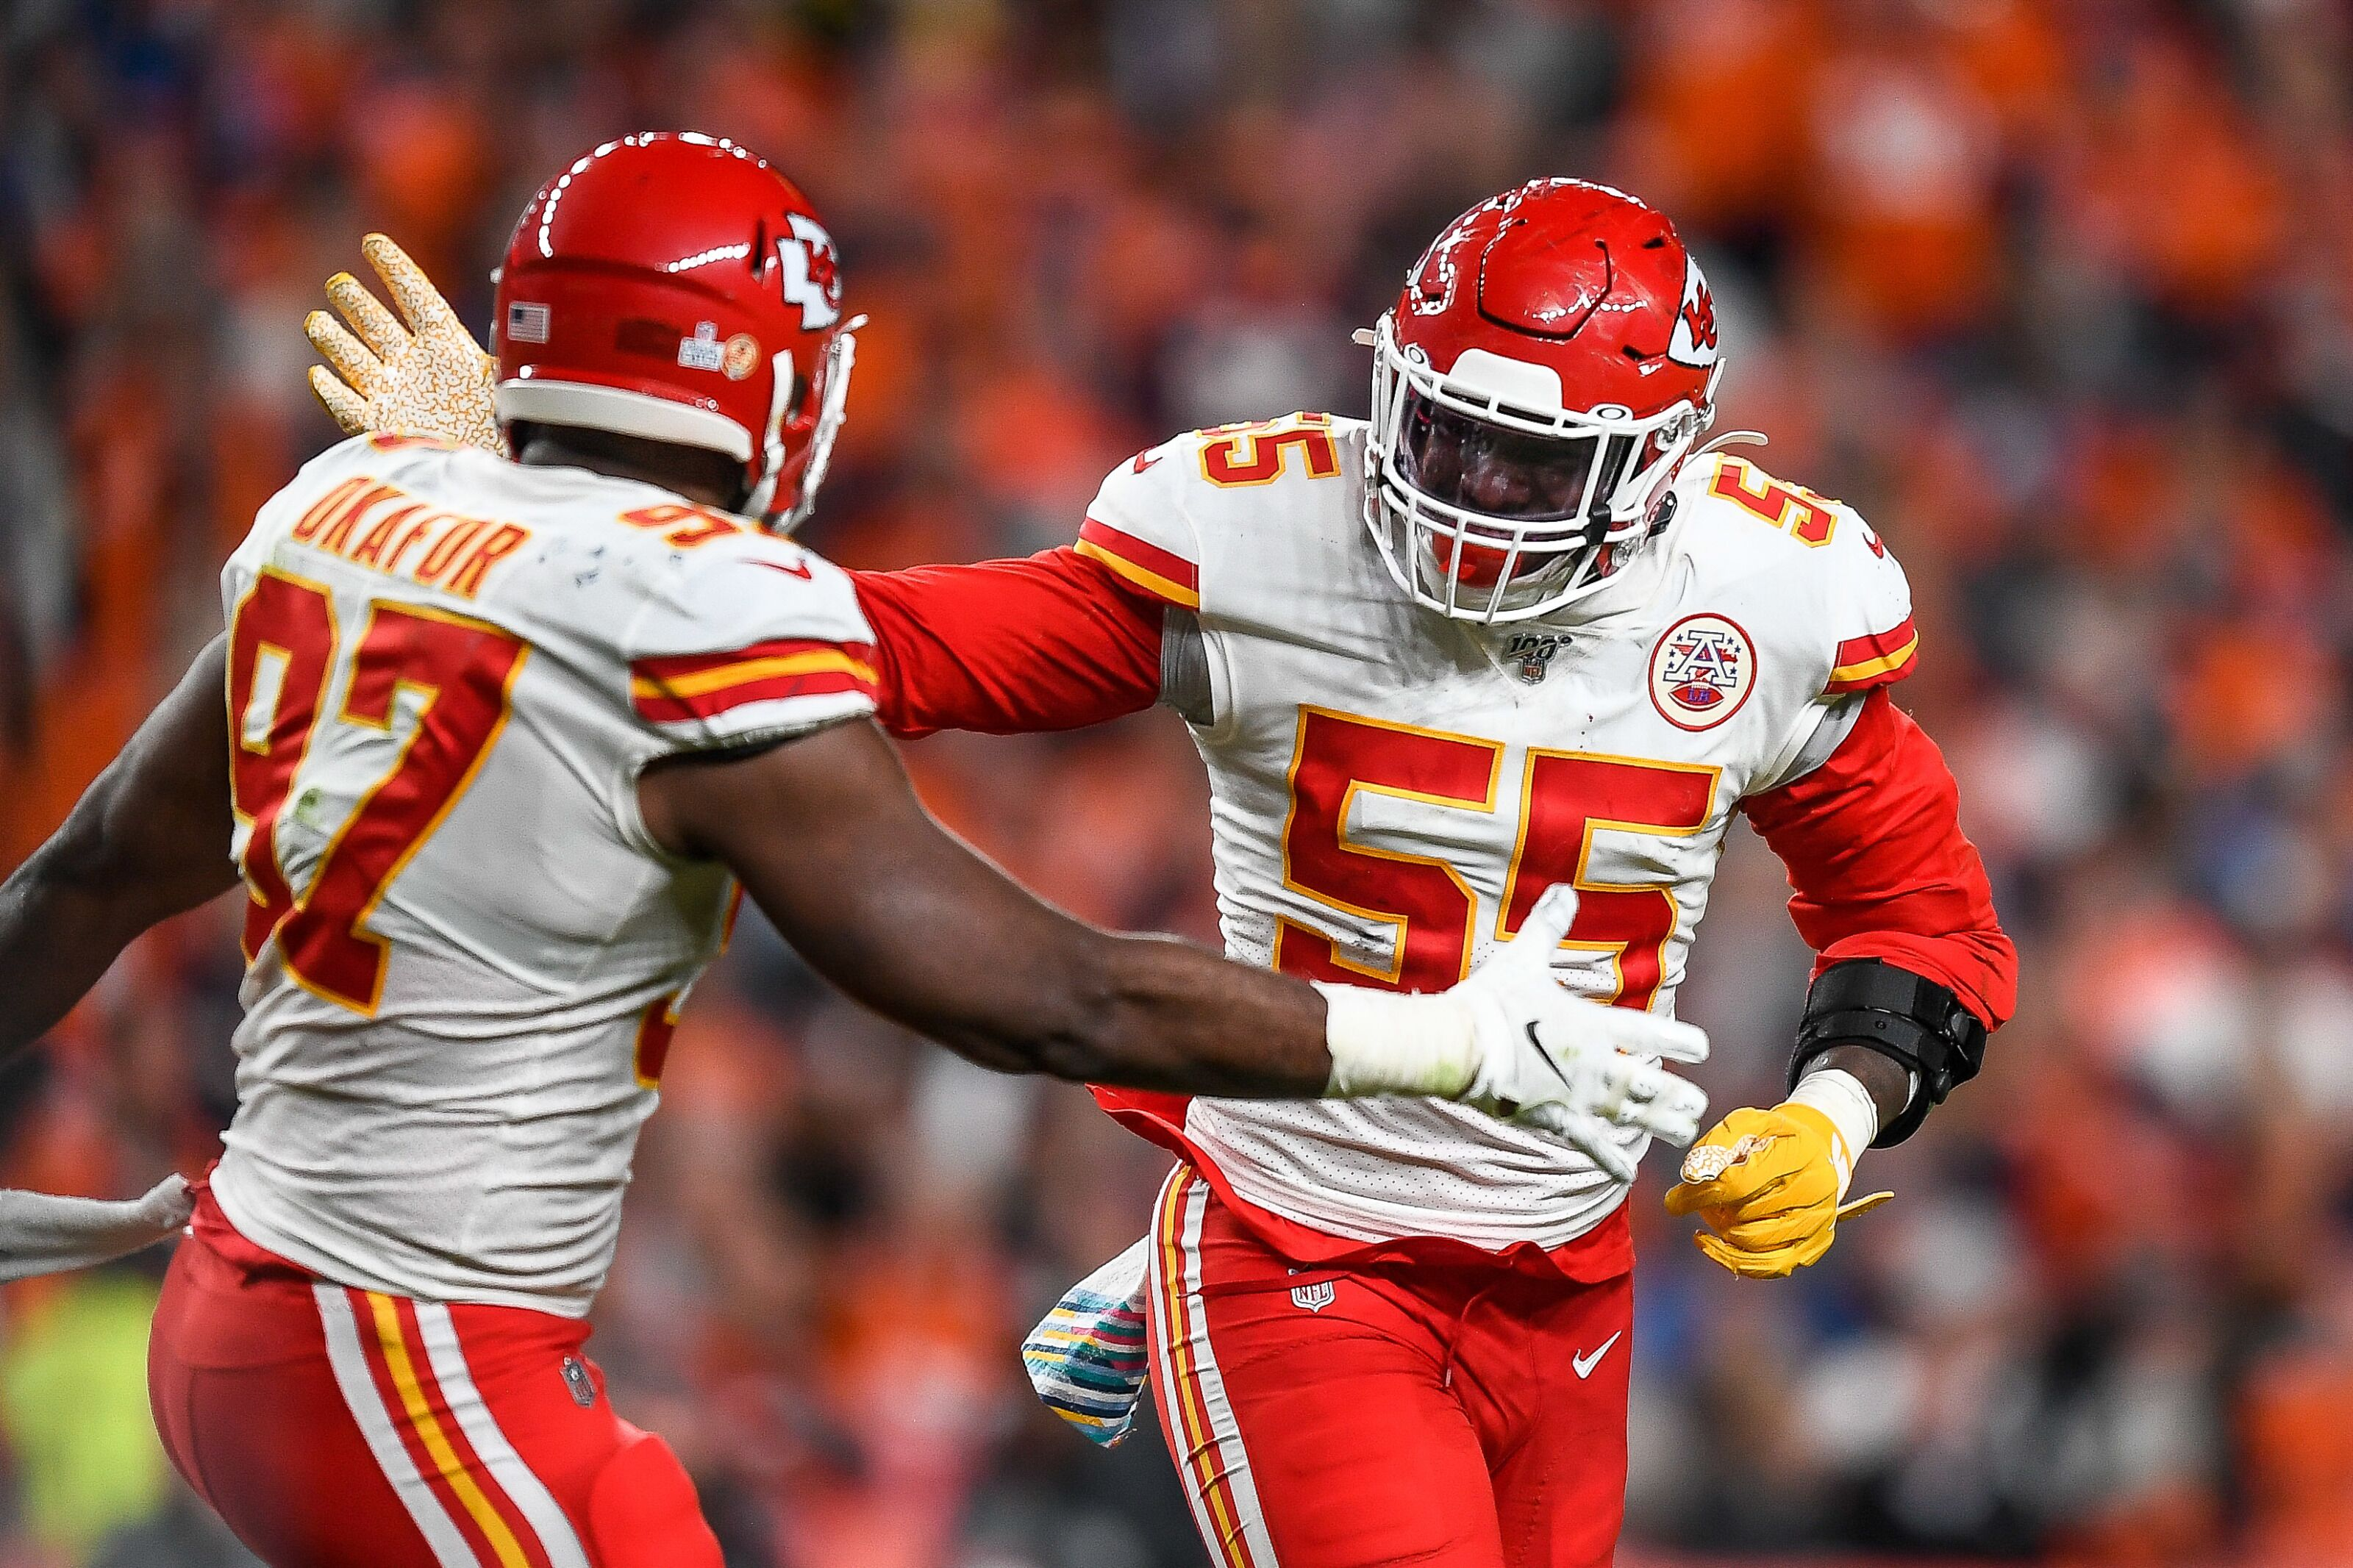 Broncos vs. Chiefs: Alex Okafor ruled out with chest injury